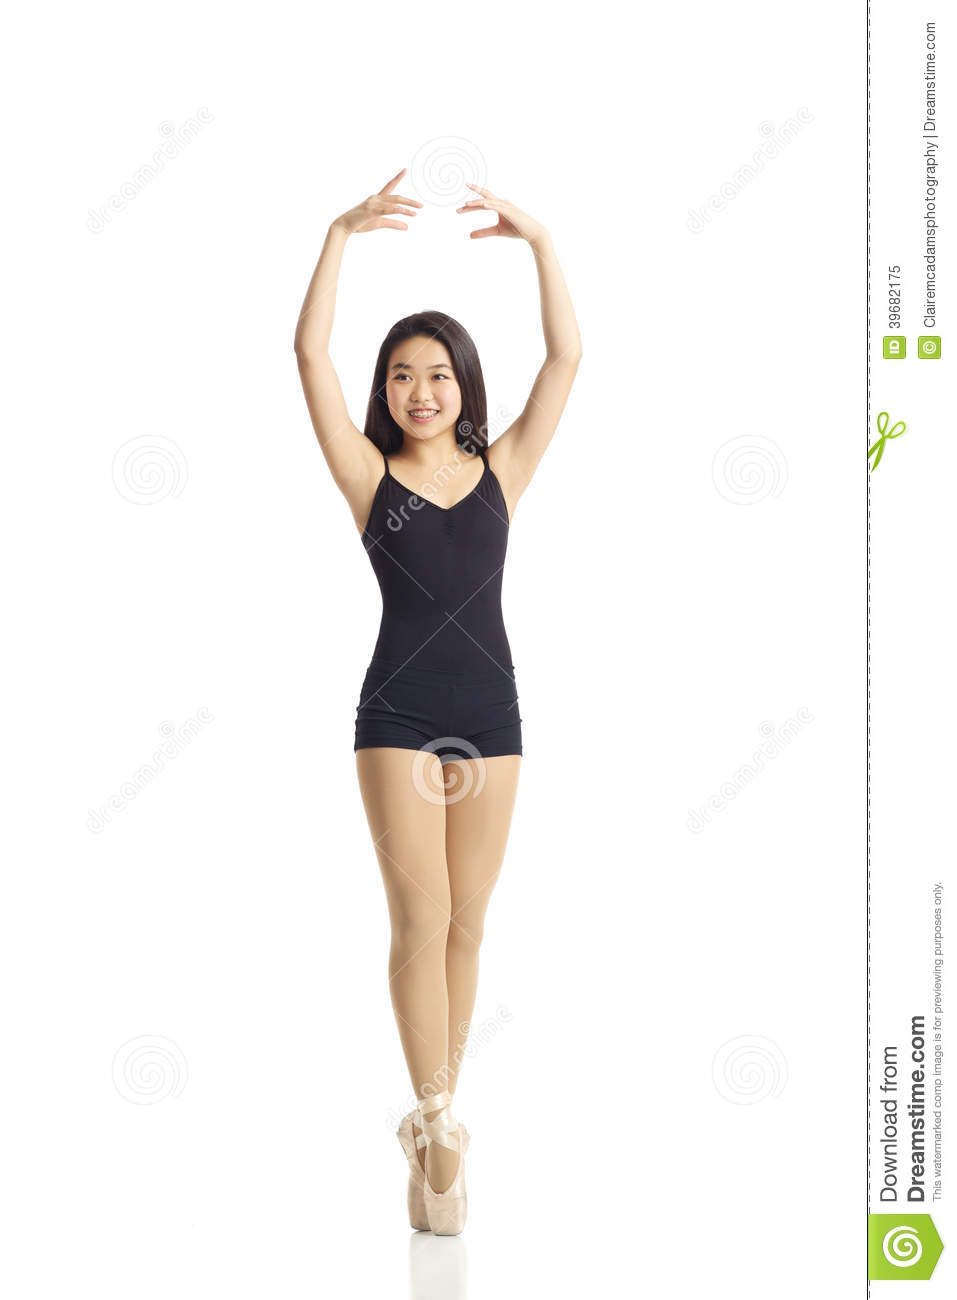 dancer posing en pointe stock photo image 39682175 ballet shoes clipart color ballet shoes clipart black and white